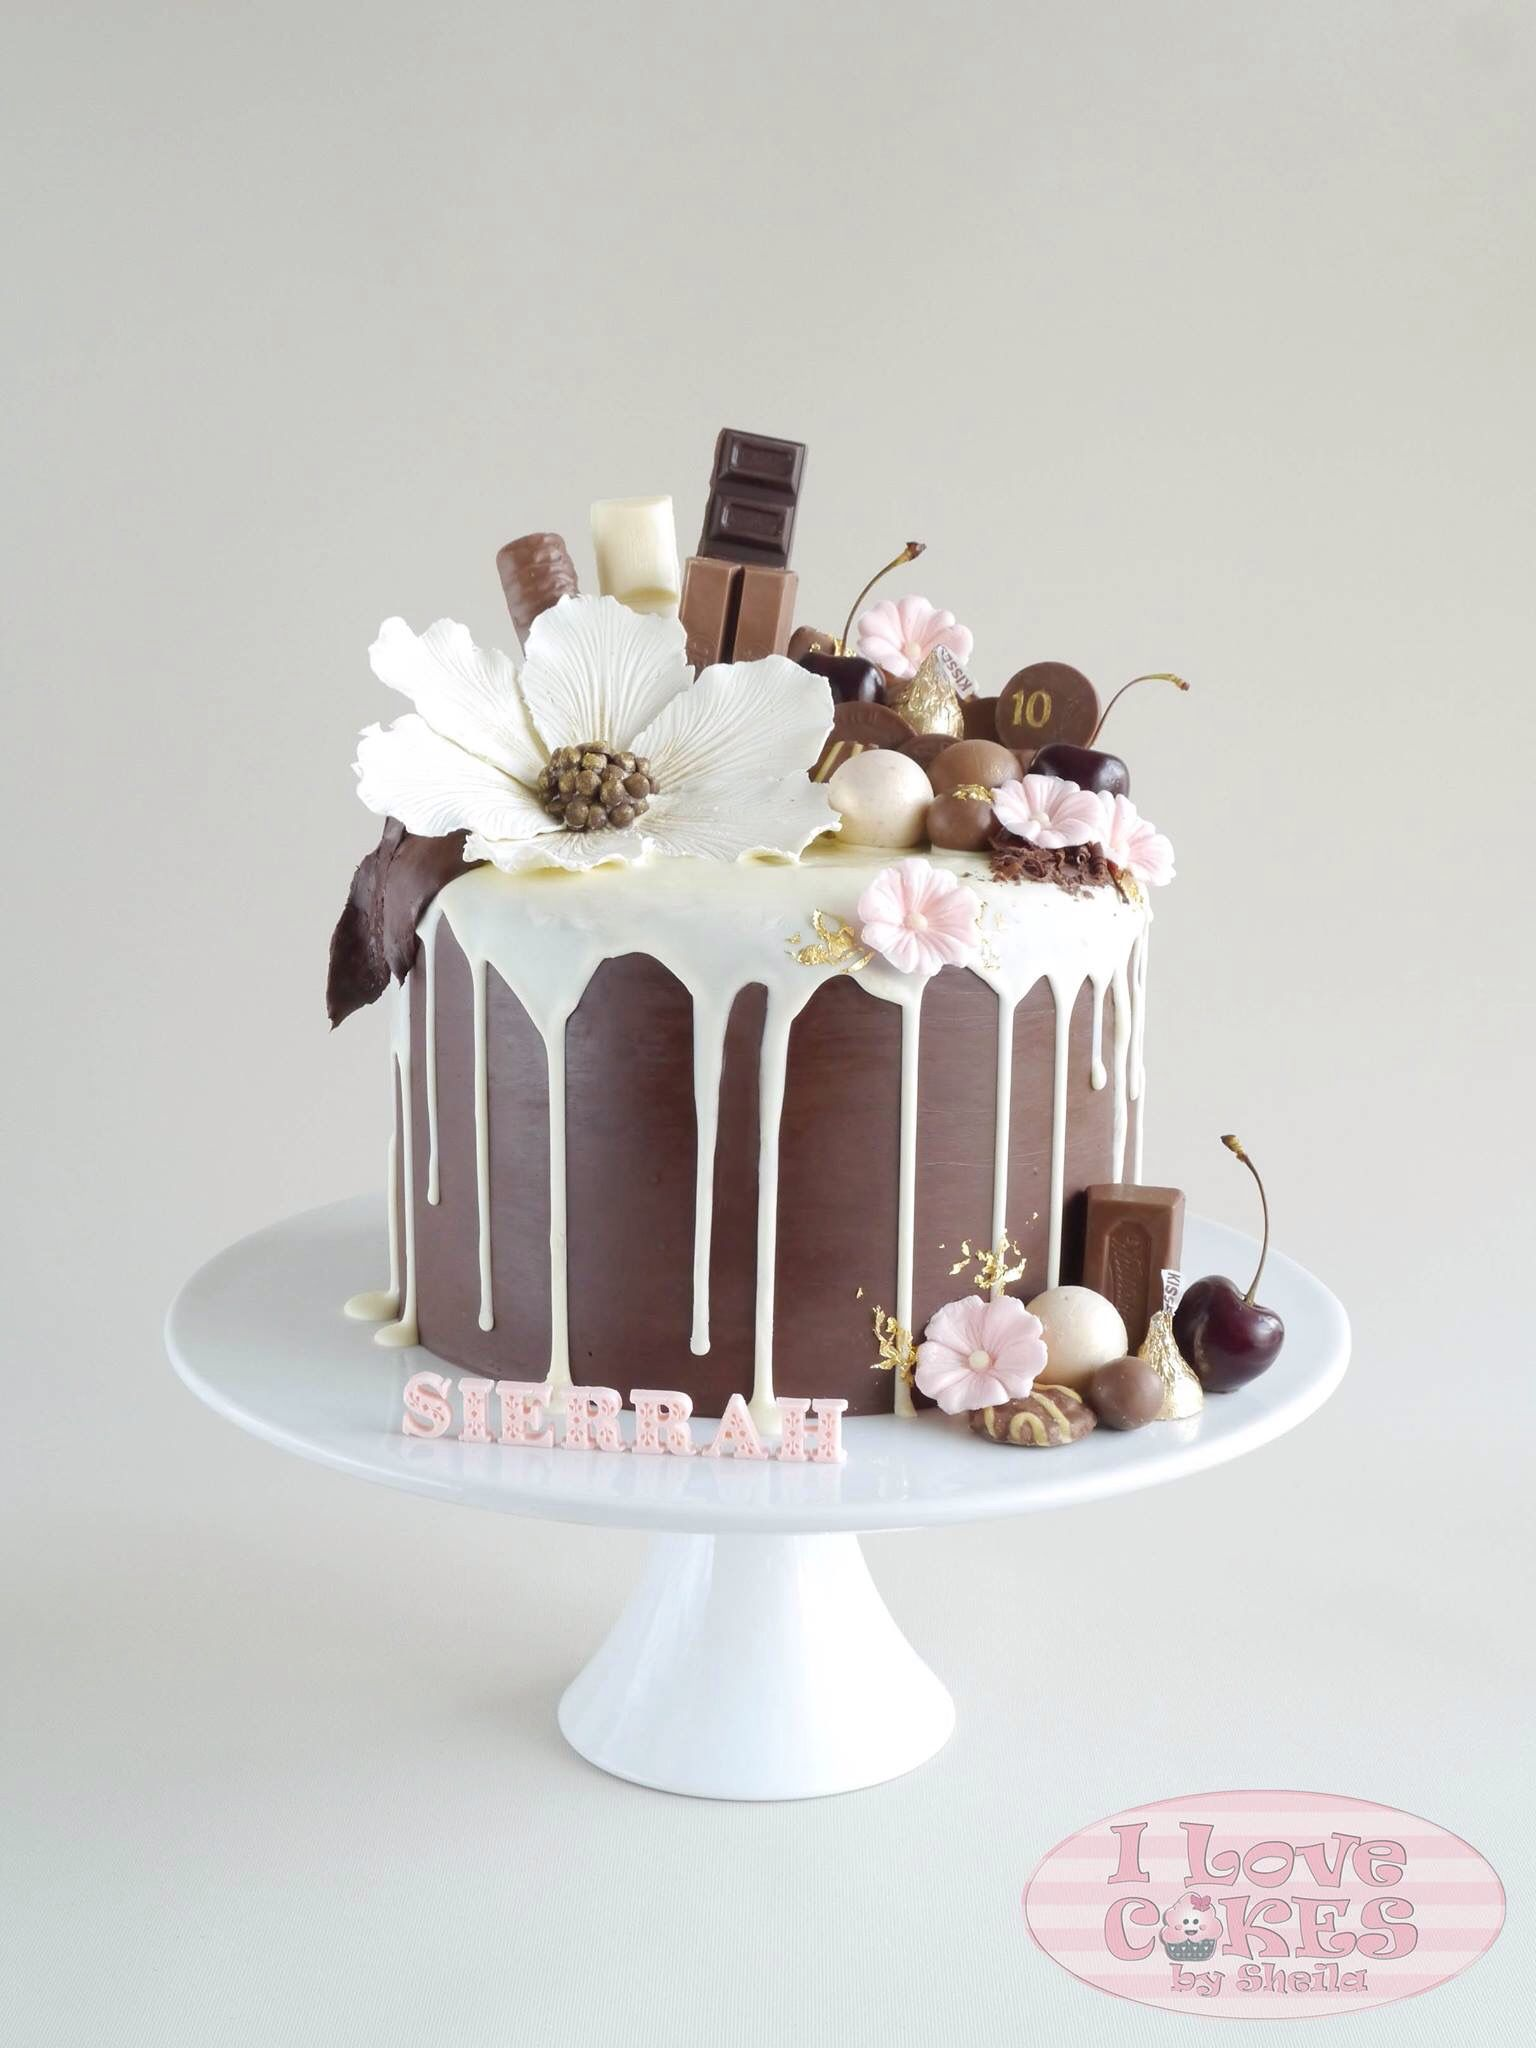 Drippy chocolate cake with beautiful flowers decorating the top drippy chocolate cake with beautiful flowers decorating the top izmirmasajfo